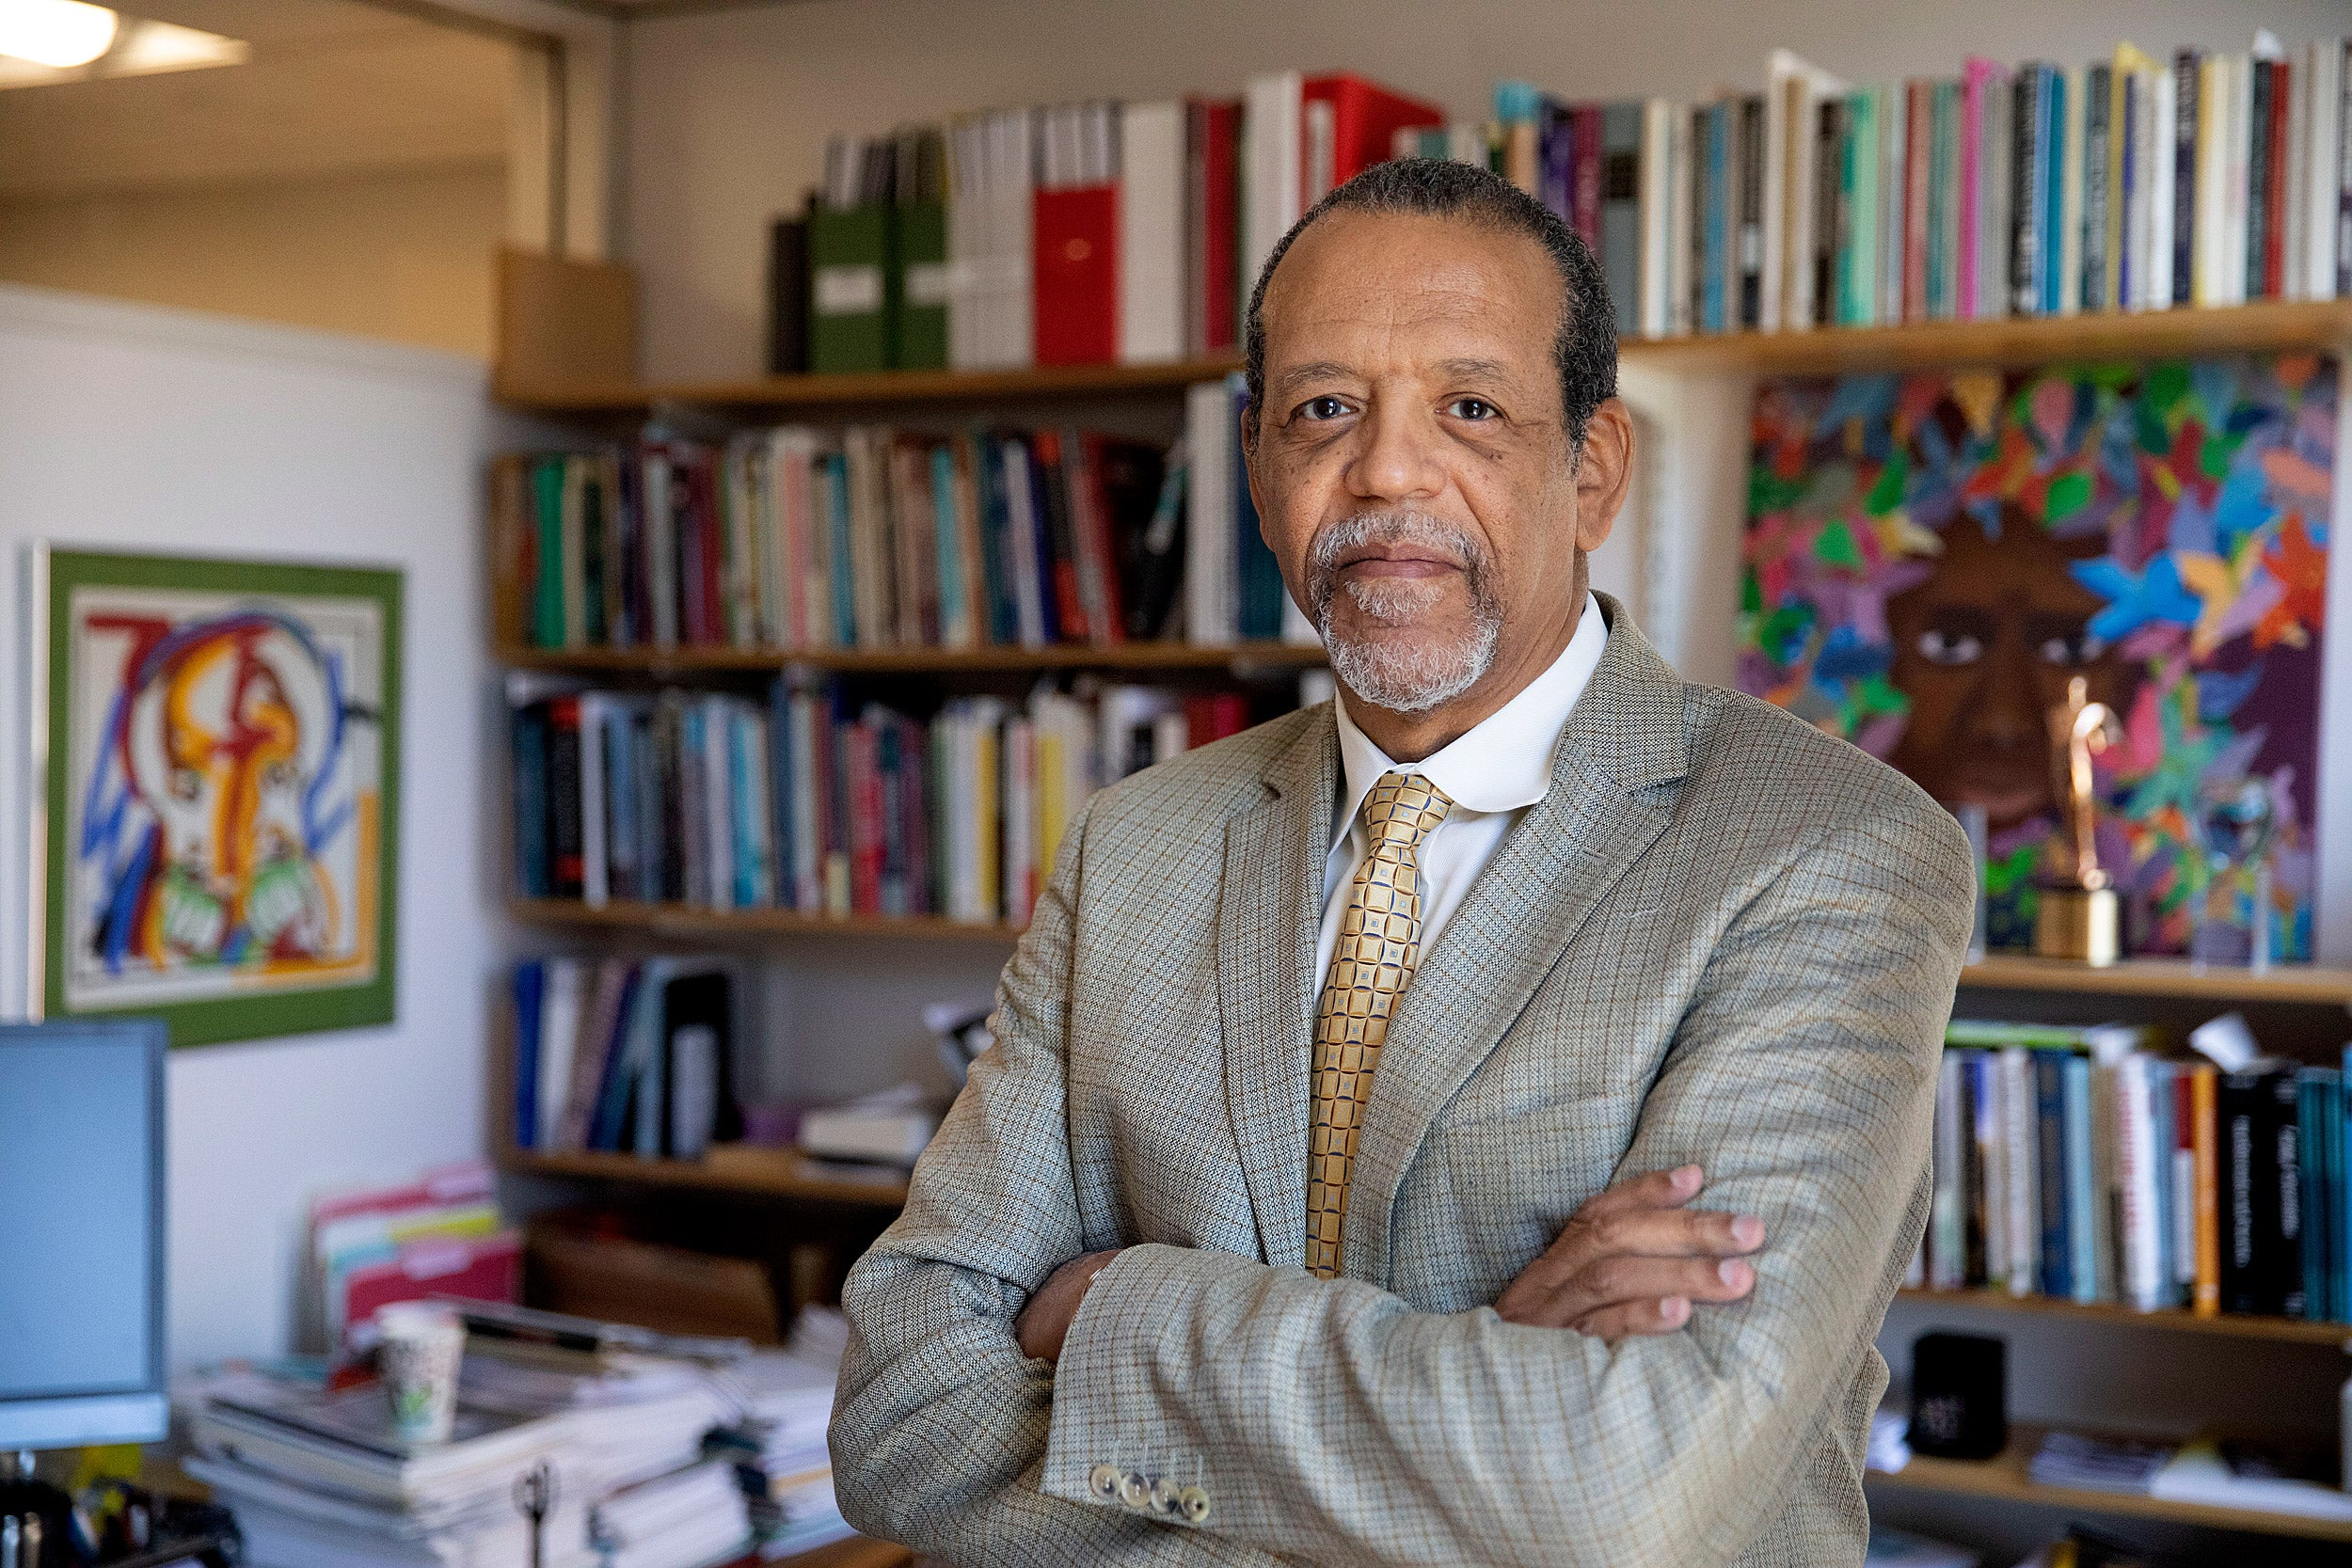 Harvard's Ronald Ferguson explores how to raise successful children